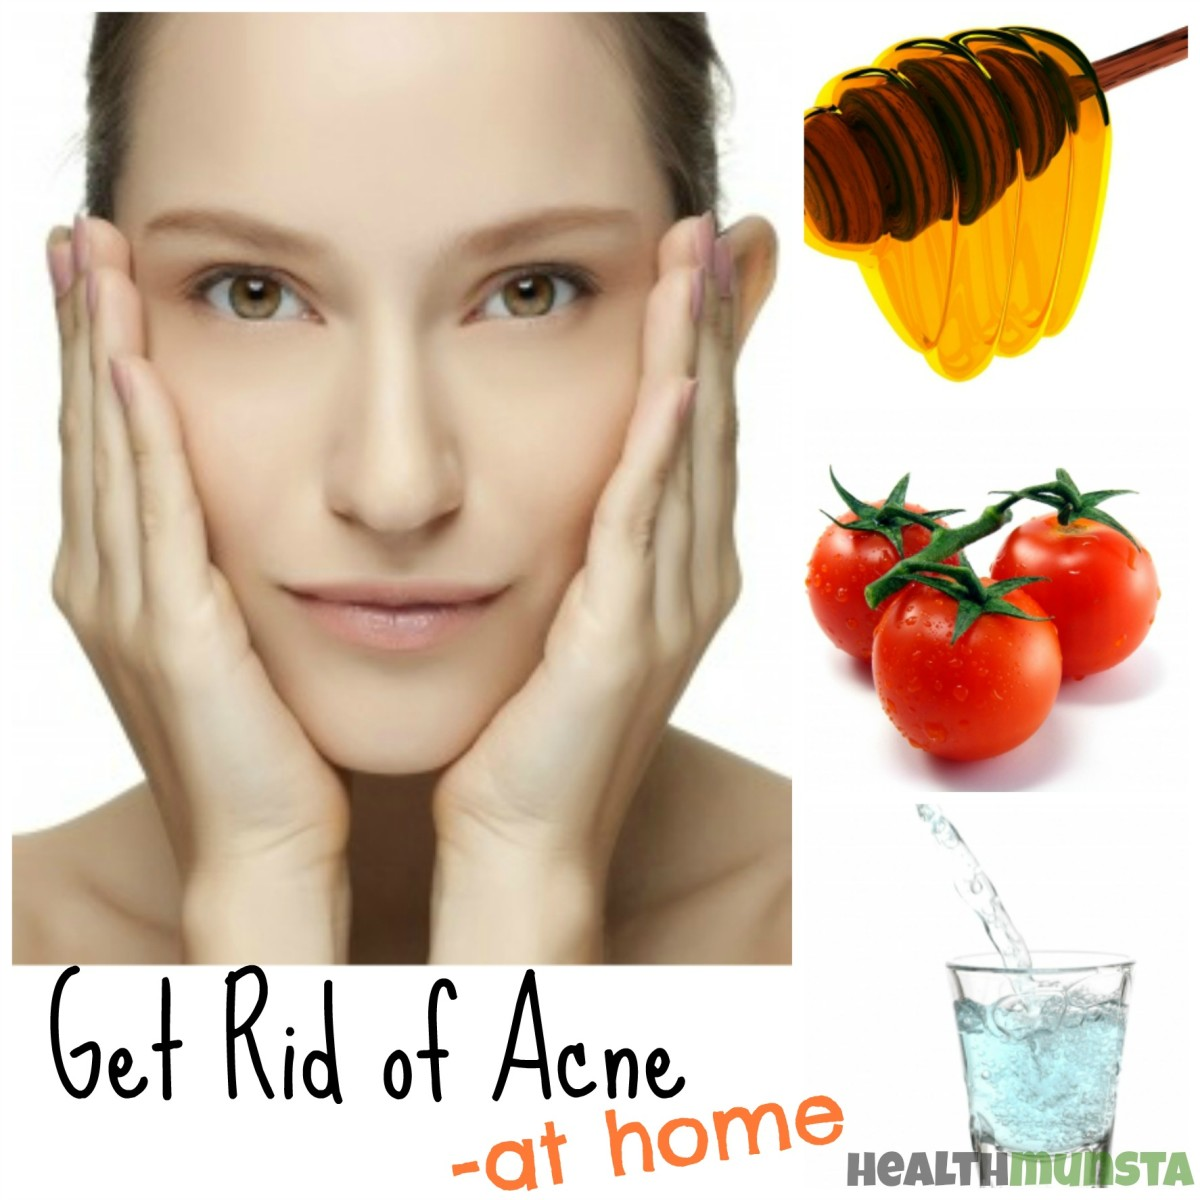 Get Rid of Acne at Home - Using Natural Remedies & Good Habits